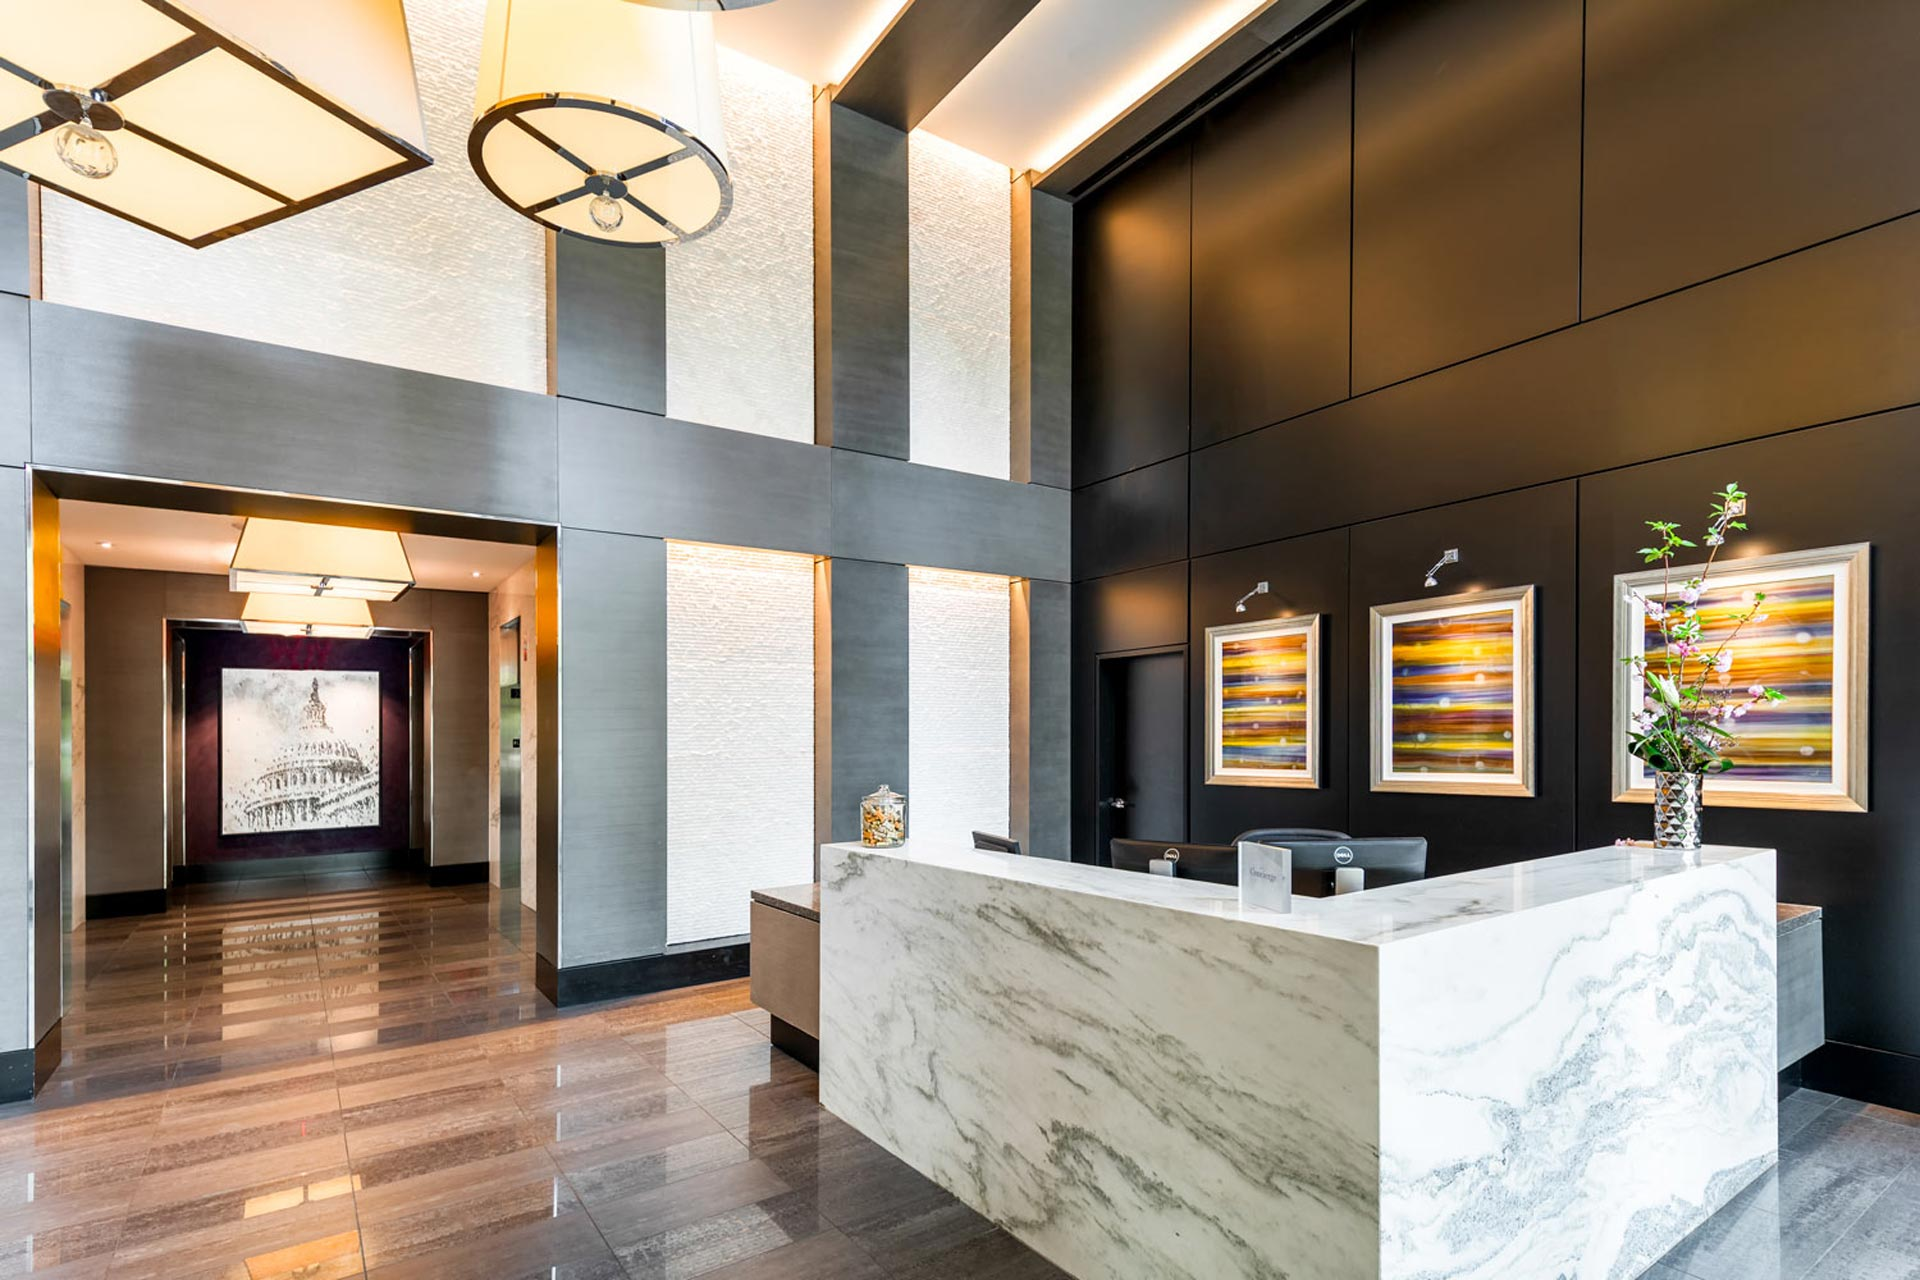 View of modern, marble reception desk with elevator lobby beyond